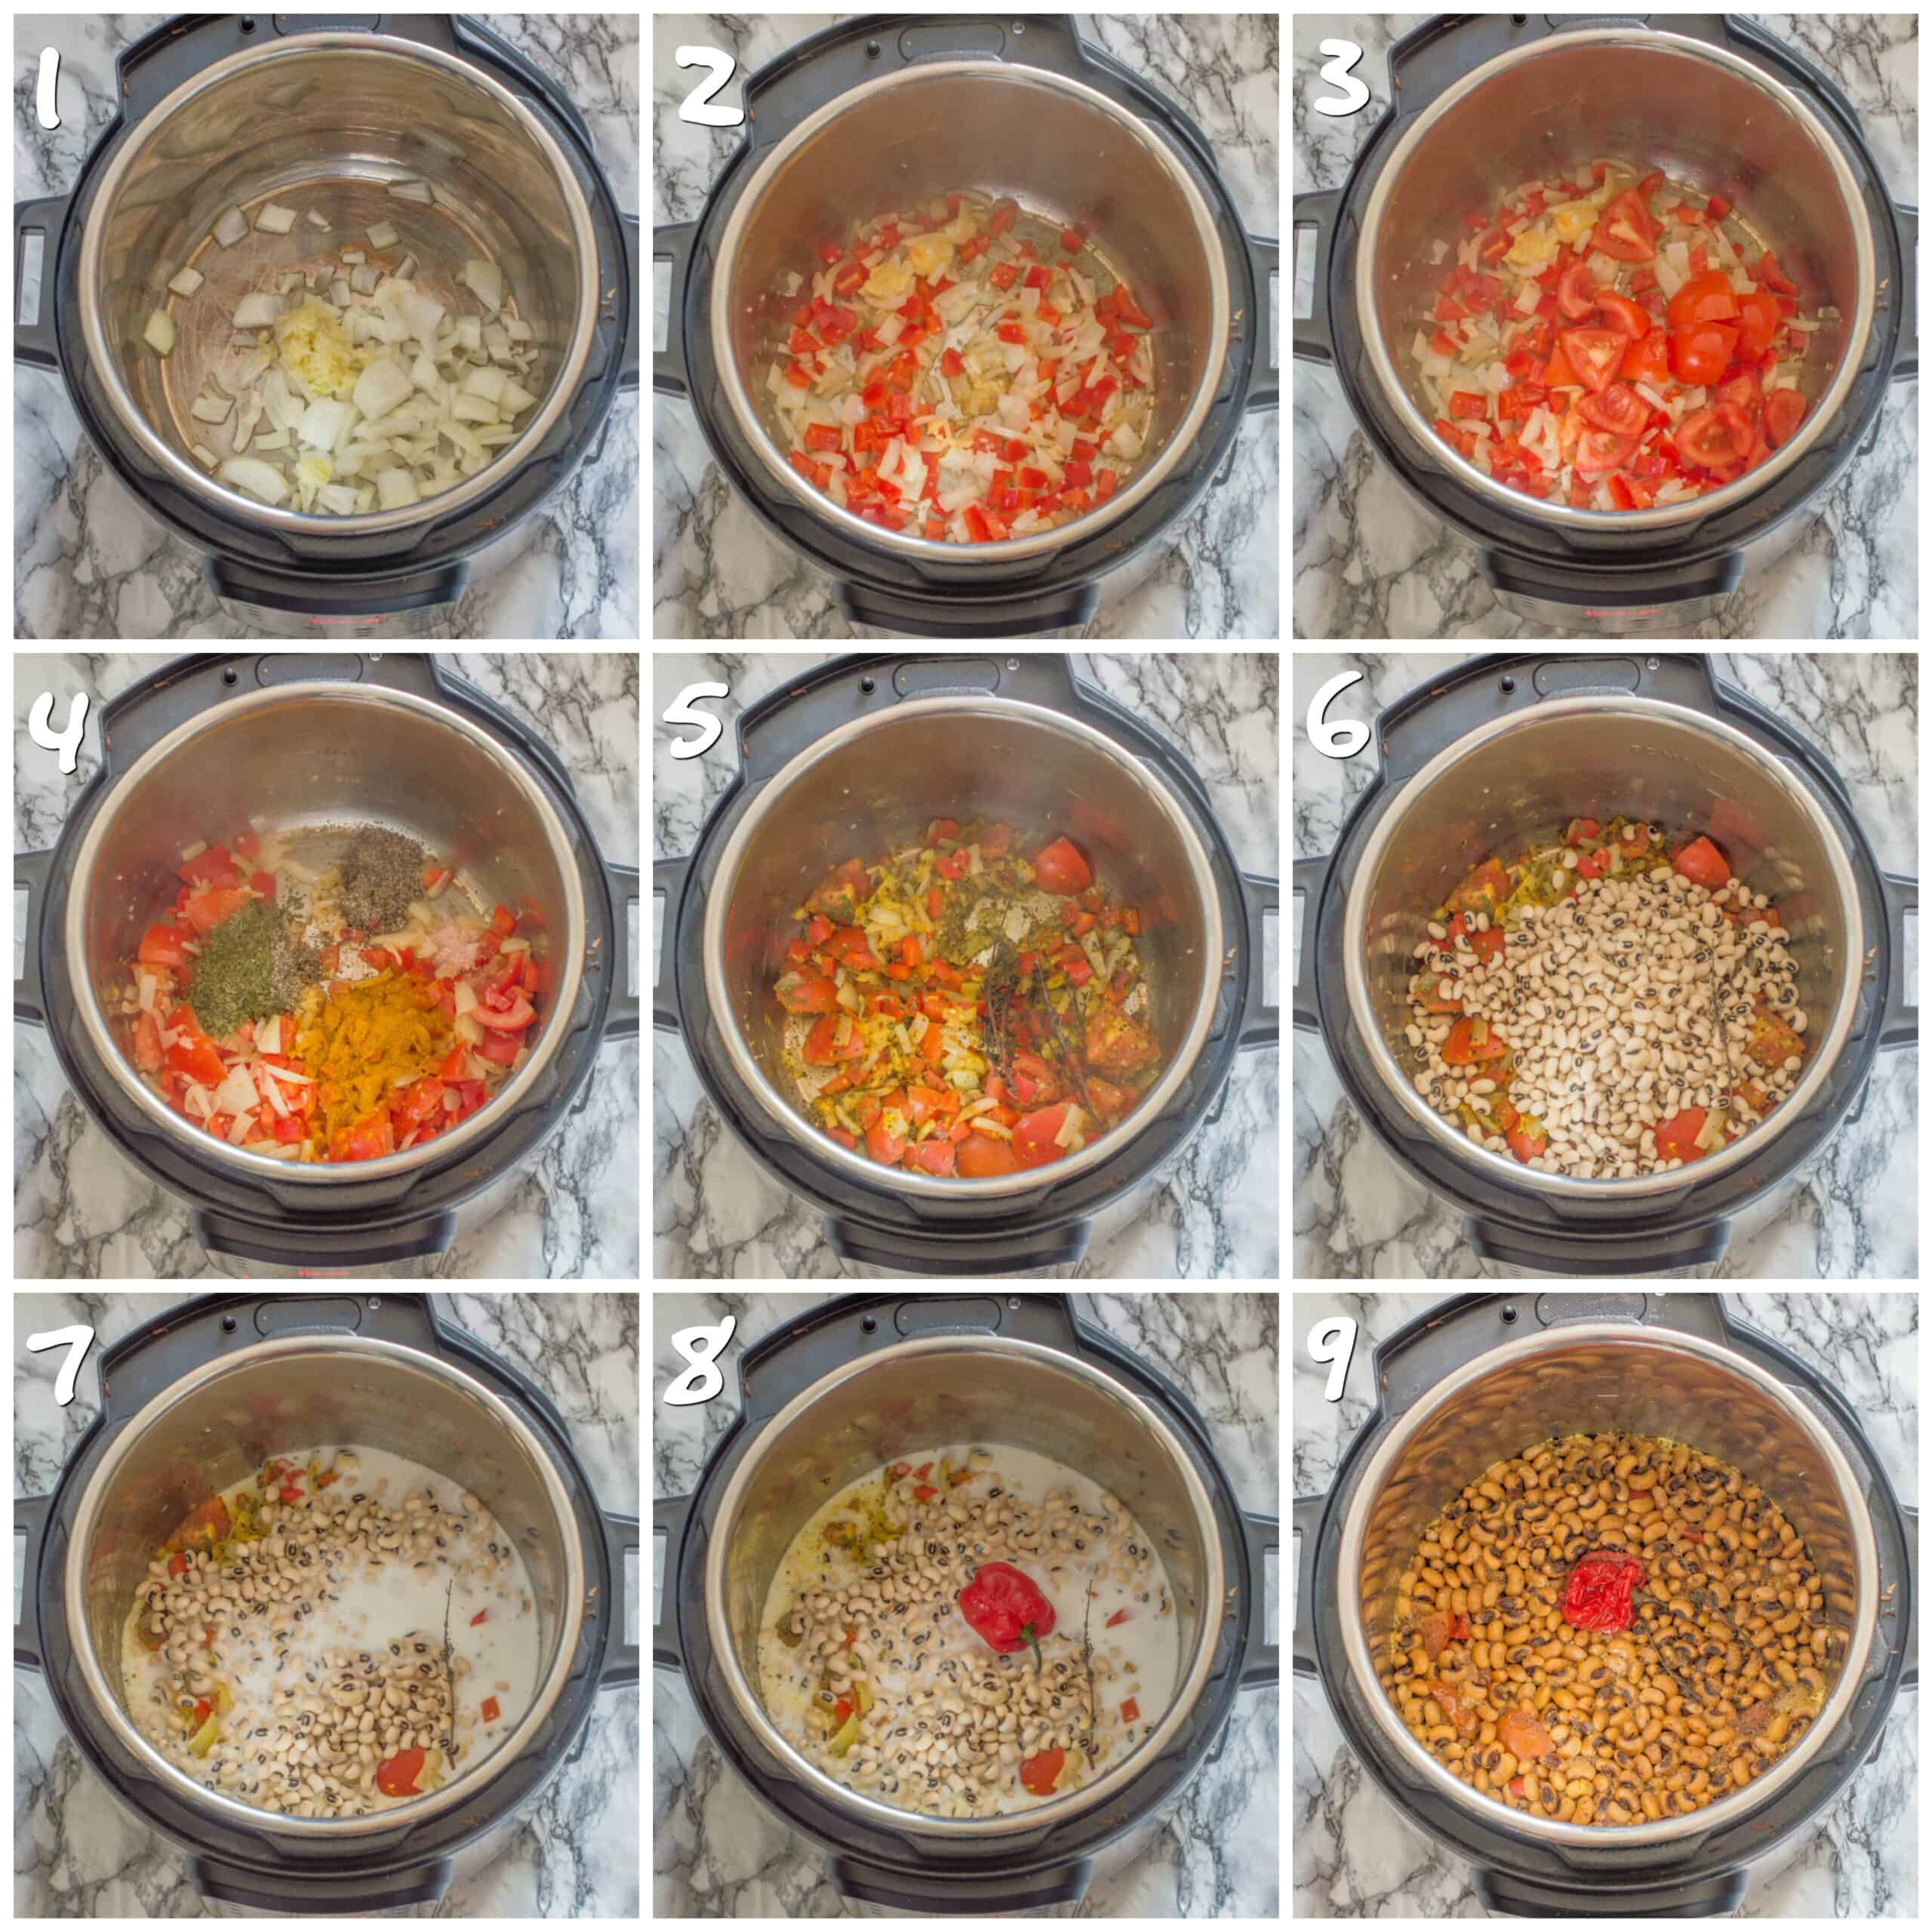 steps 1-9 making the curry in the instant pot